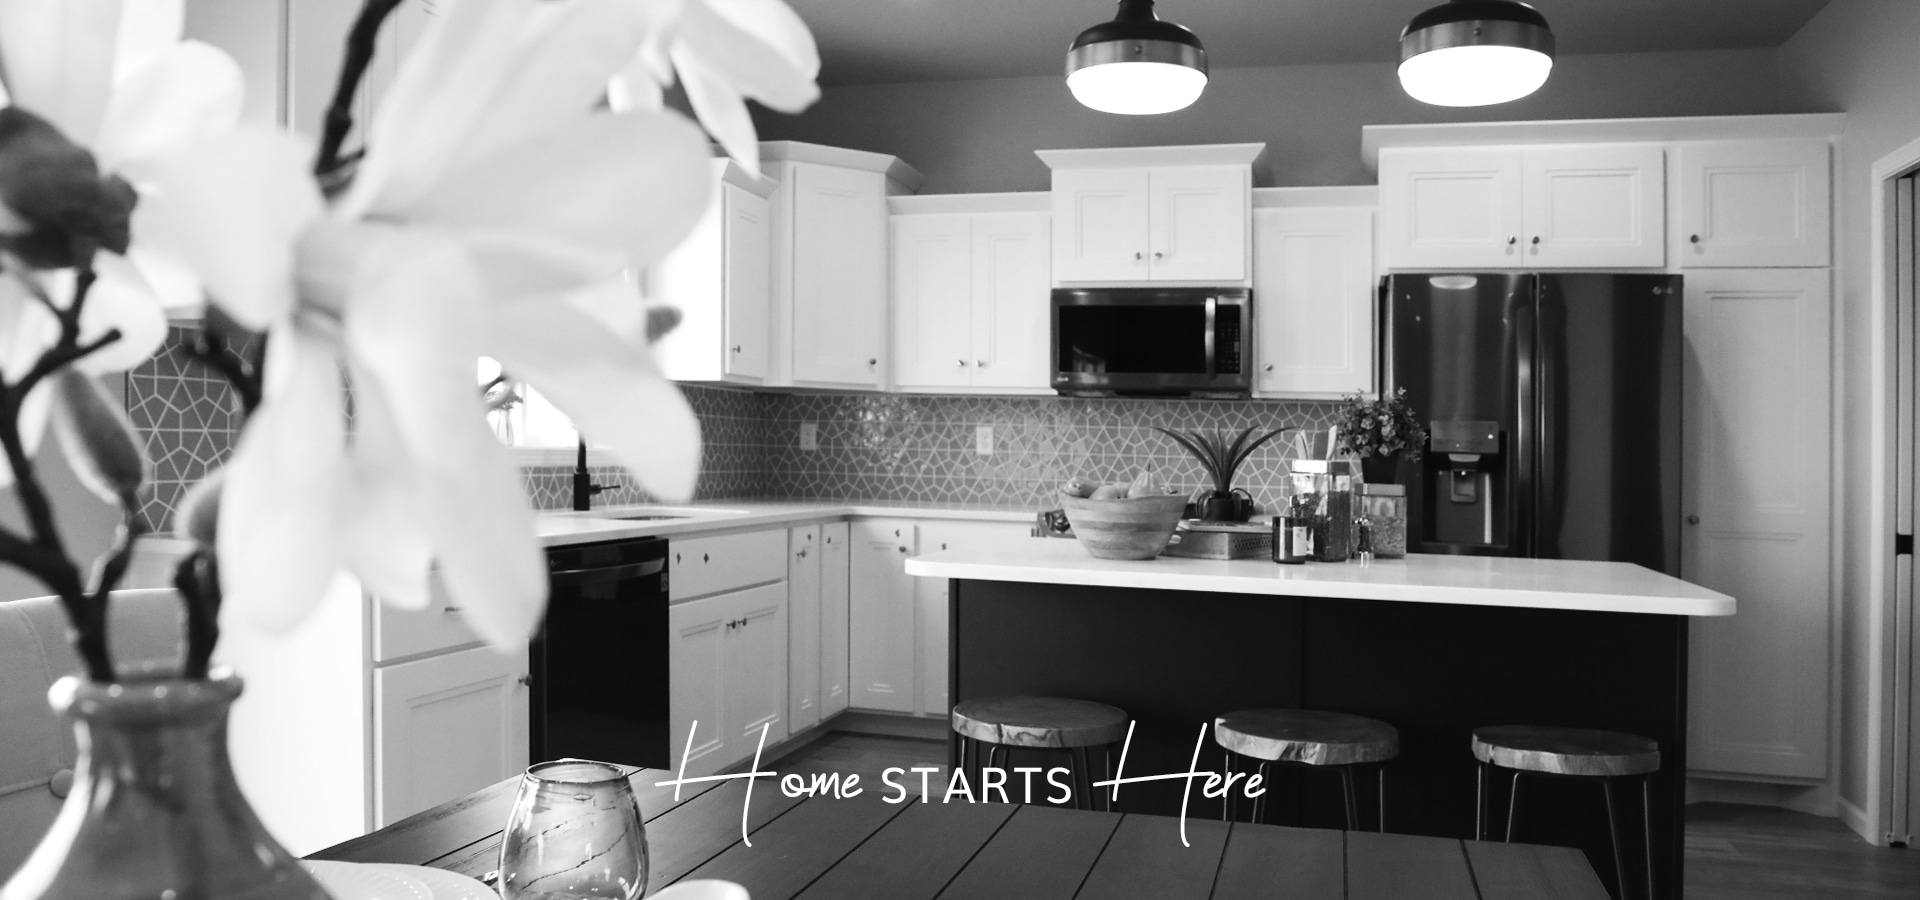 Home Starts Here copy